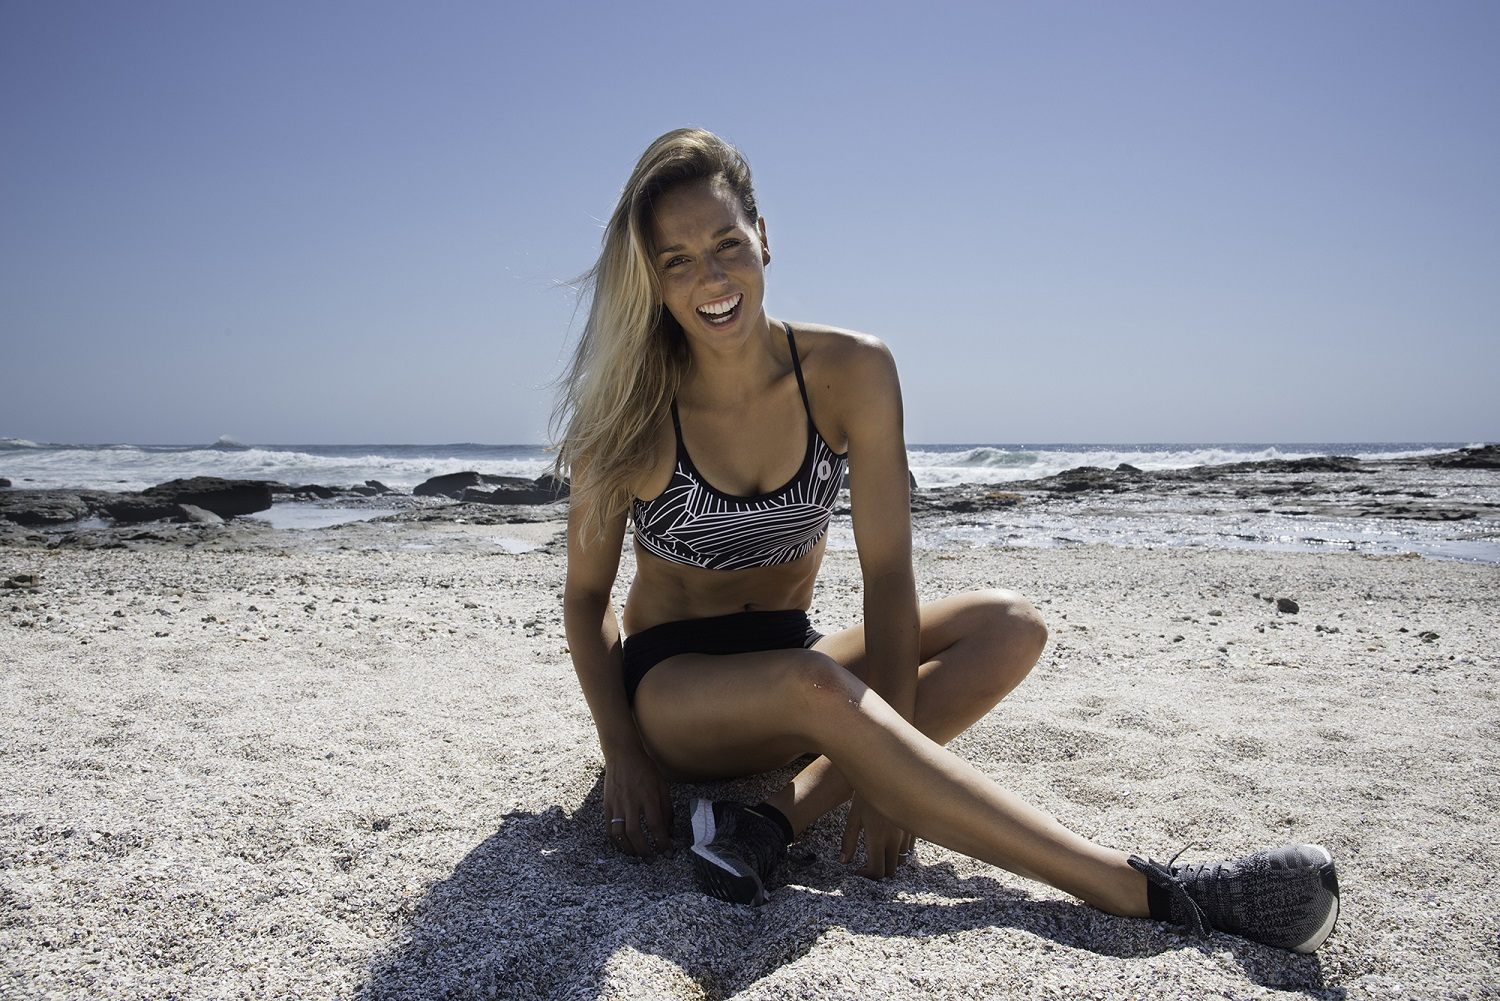 My Day on a Plate: Surfing Sensation Sally Fitzgibbons